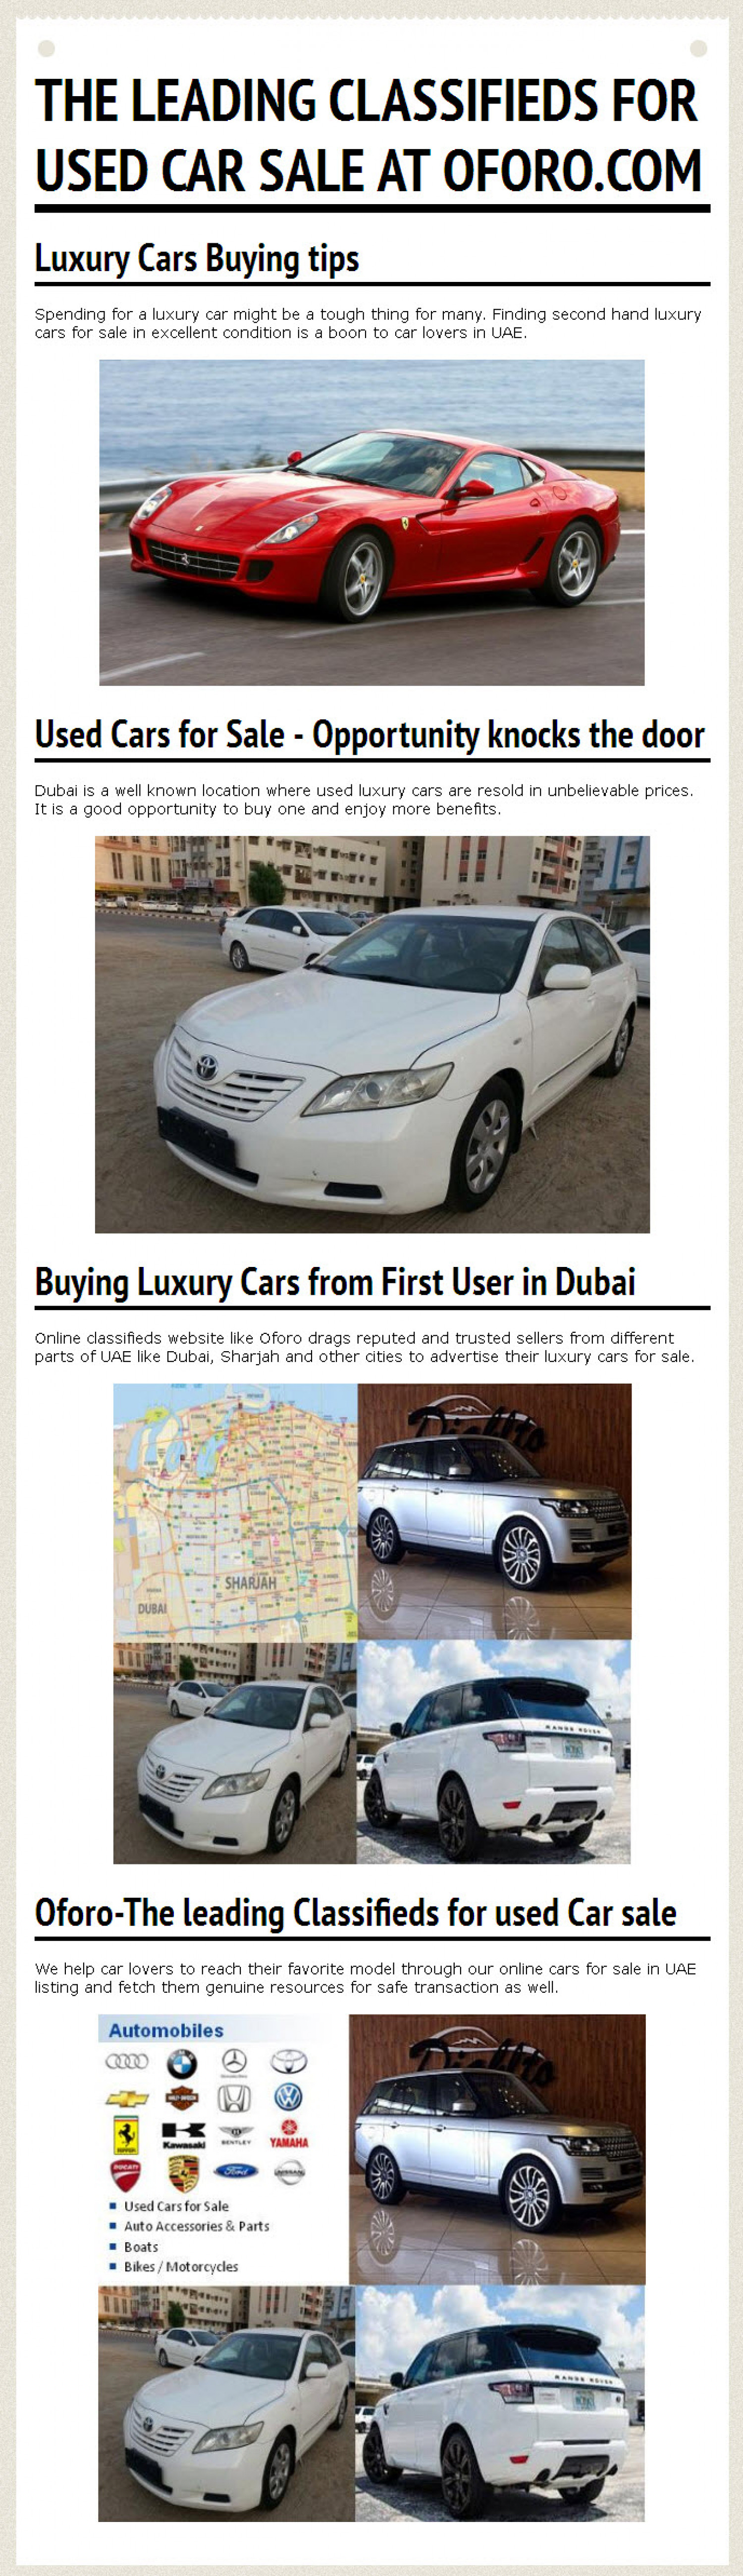 The leading Classifieds for used Car sale at oforo.com | Visual.ly